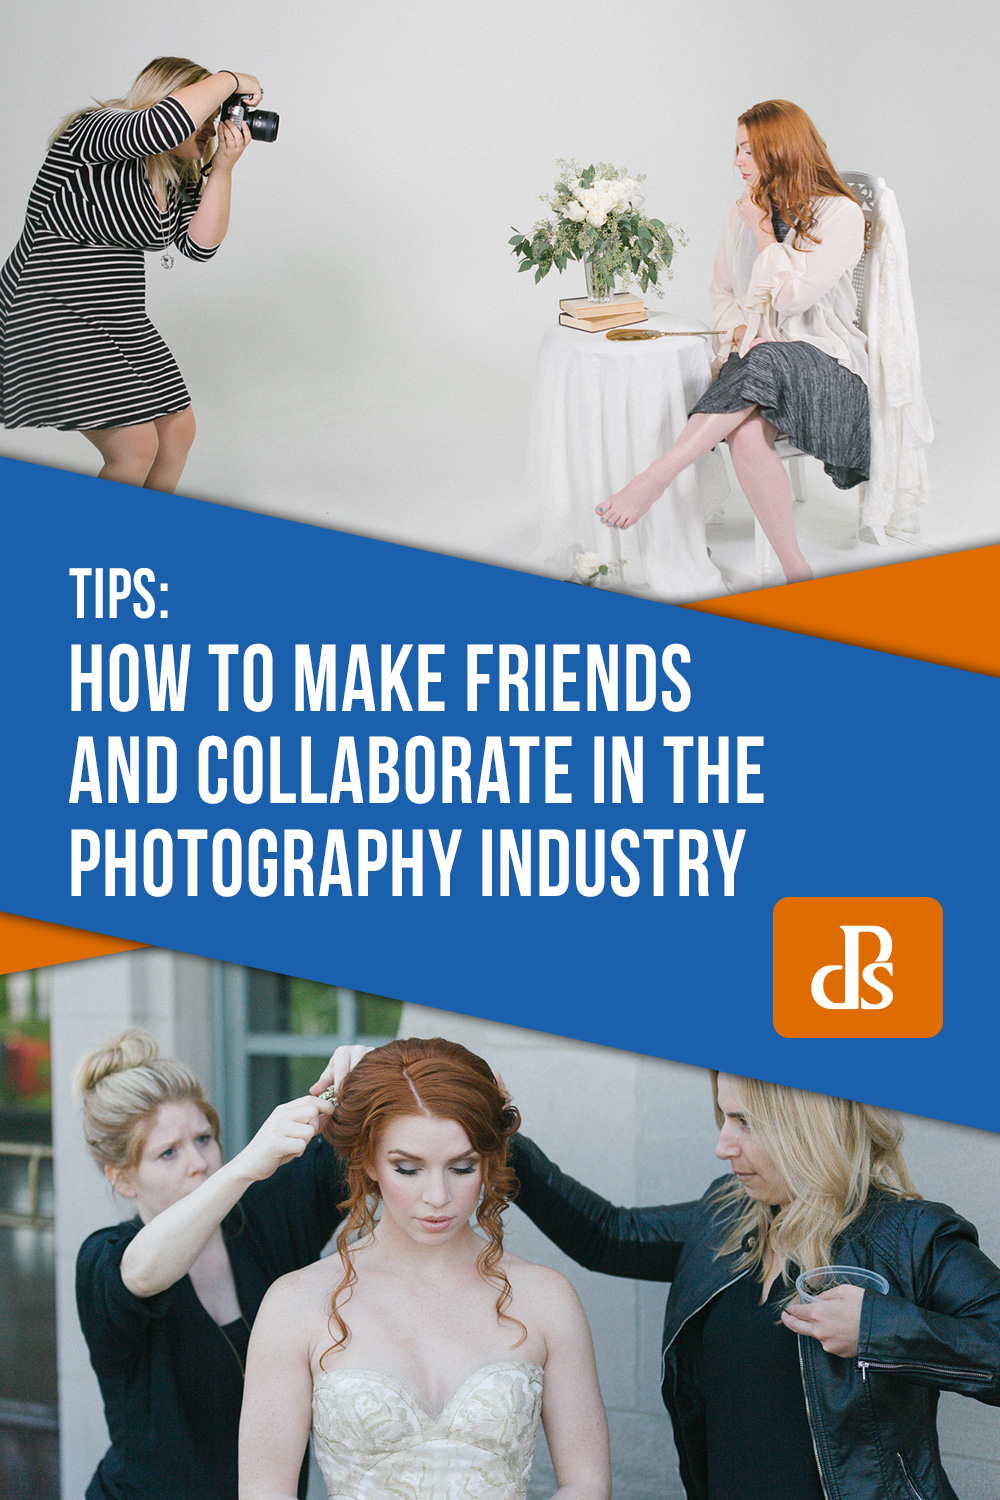 How to Make Friends and Collaborate in the Photography Industry